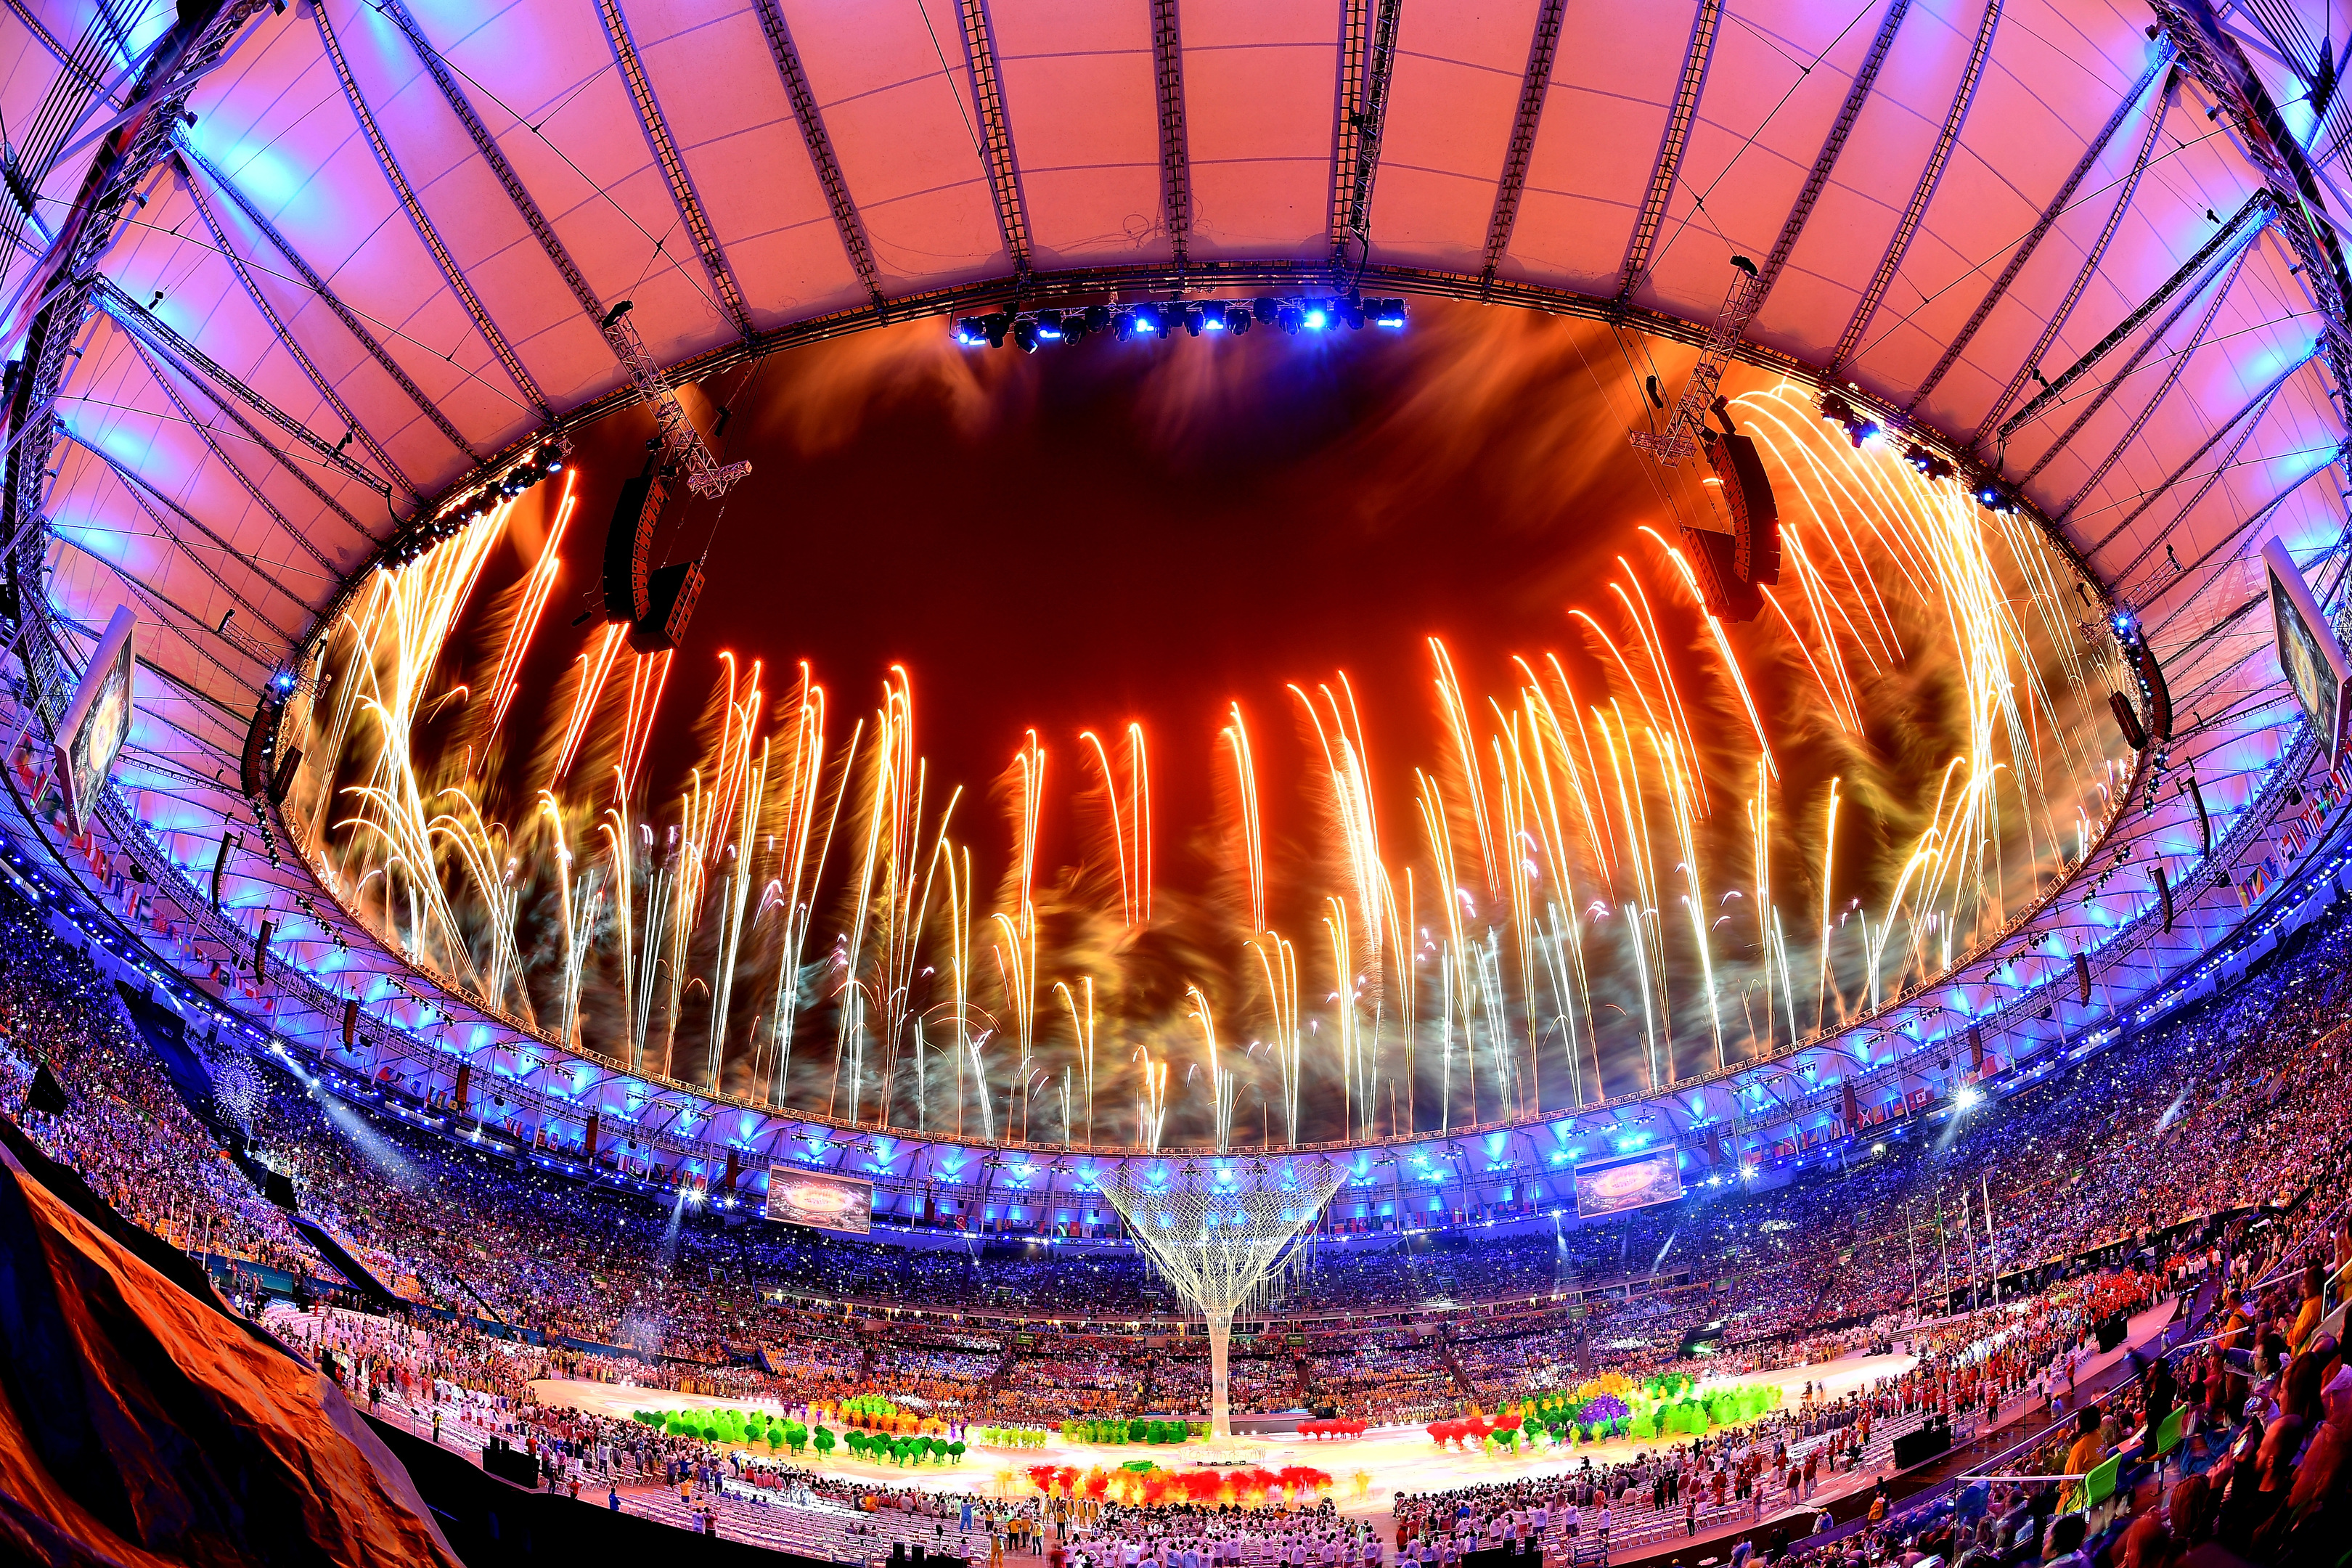 Fireworks explode above the Maracana Stadium at the end of the closing ceremony of the Rio 2016 Olympic games.